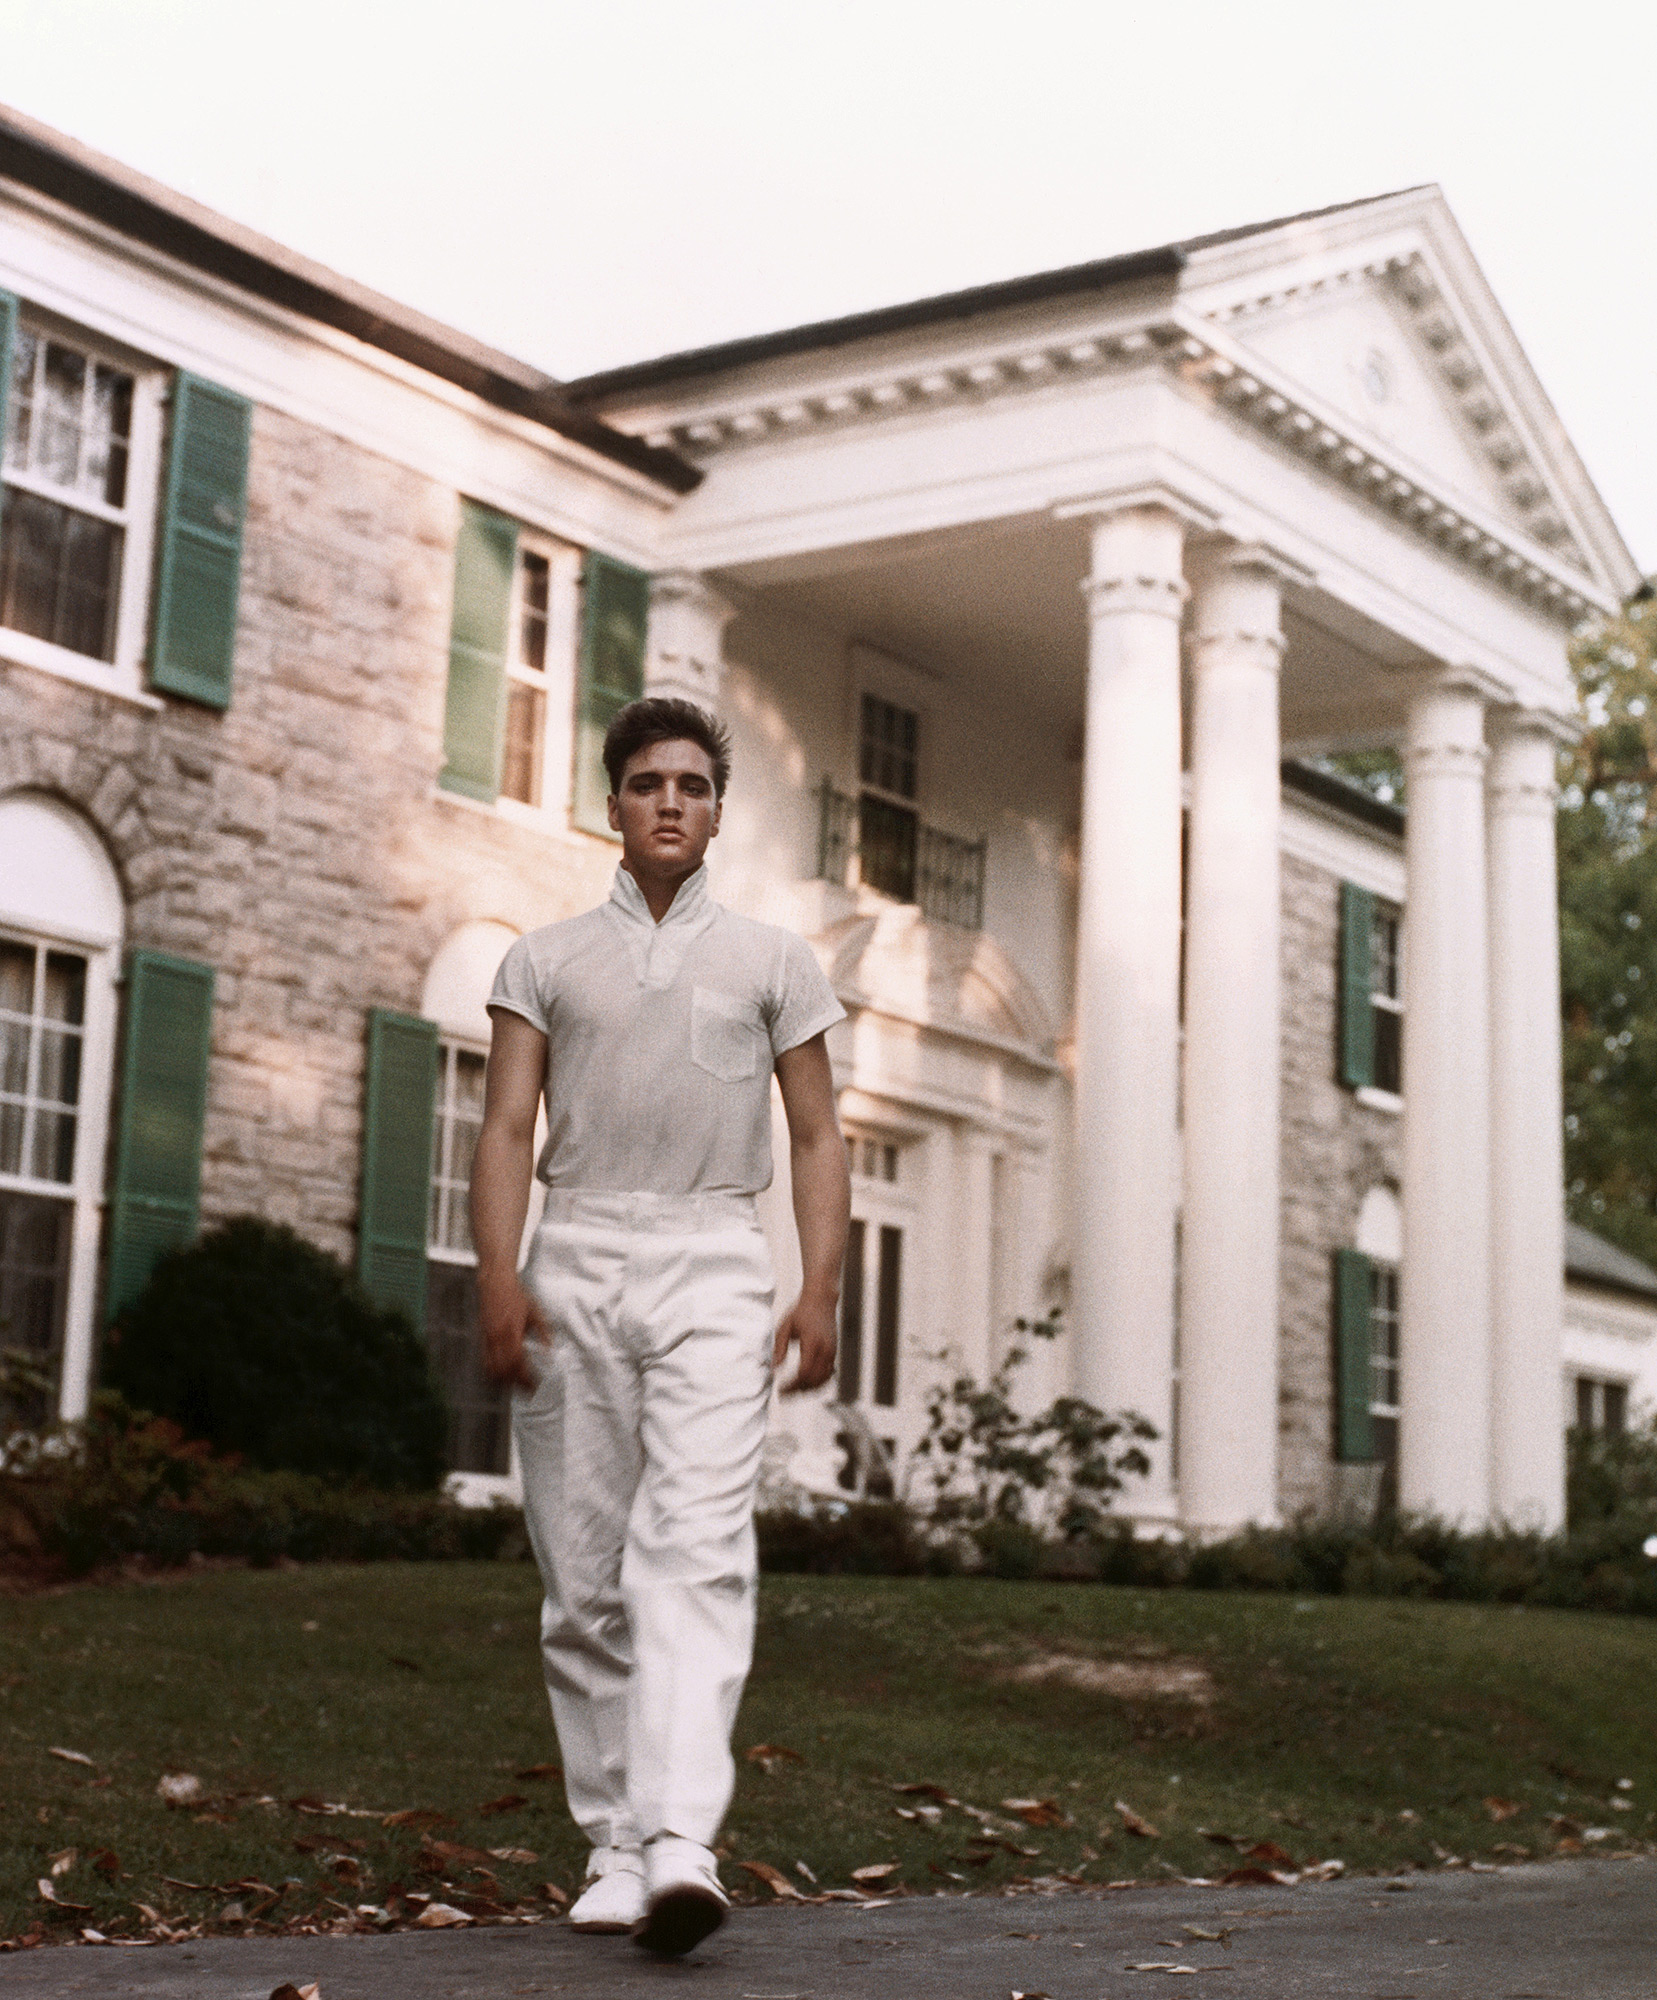 GRACELAND: WHAT'S IN A NAME?